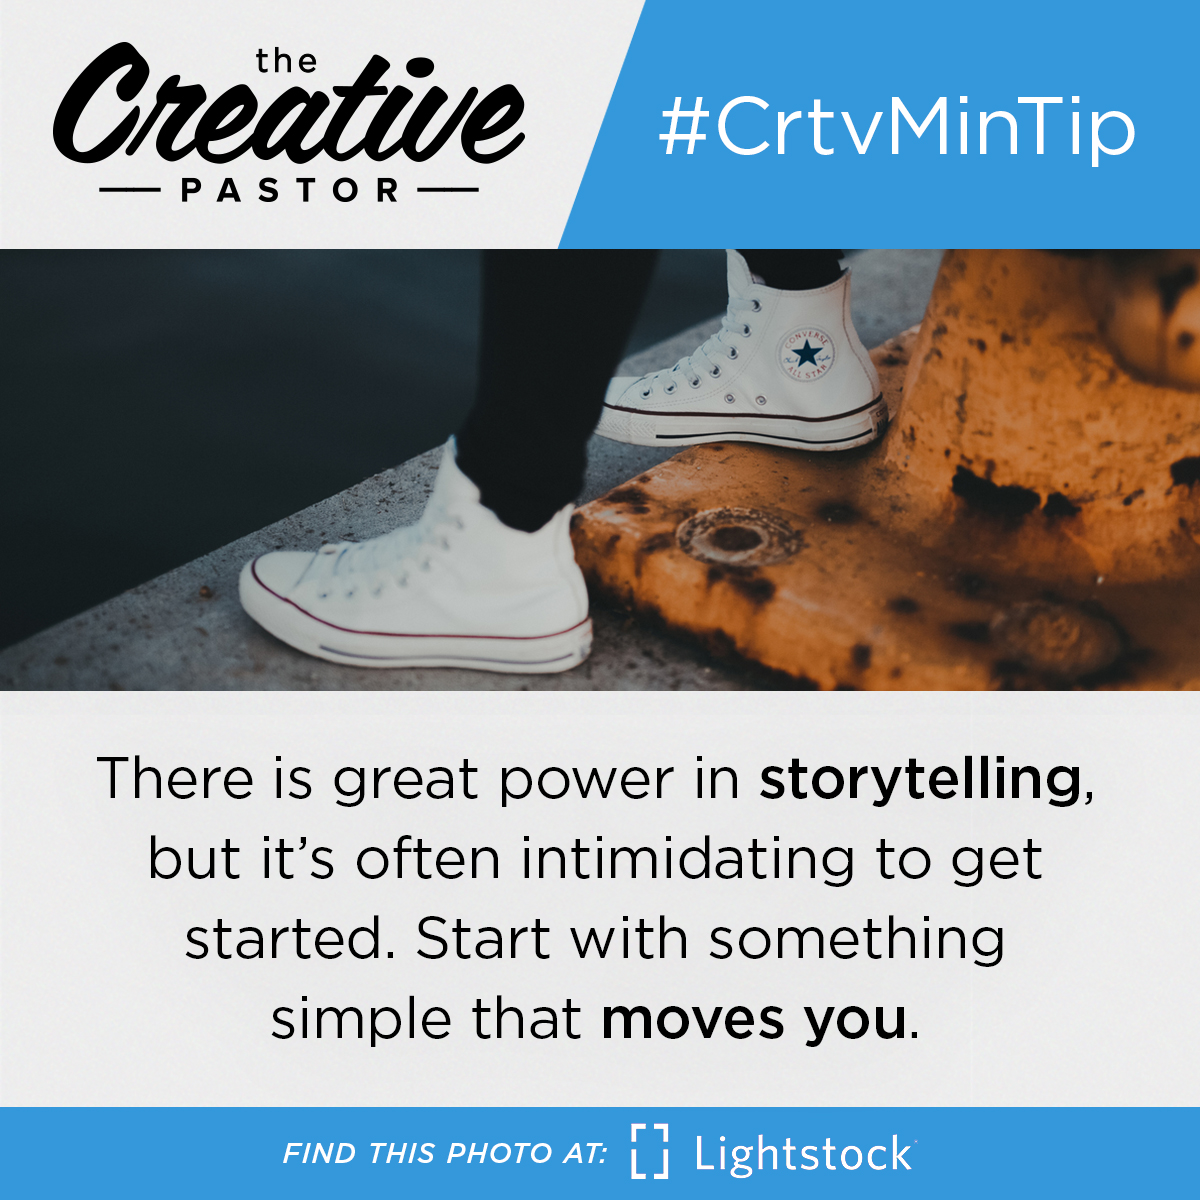 #CrtvMinTip: There is great power in storytelling, but it's often intimidating to get started. Start with something